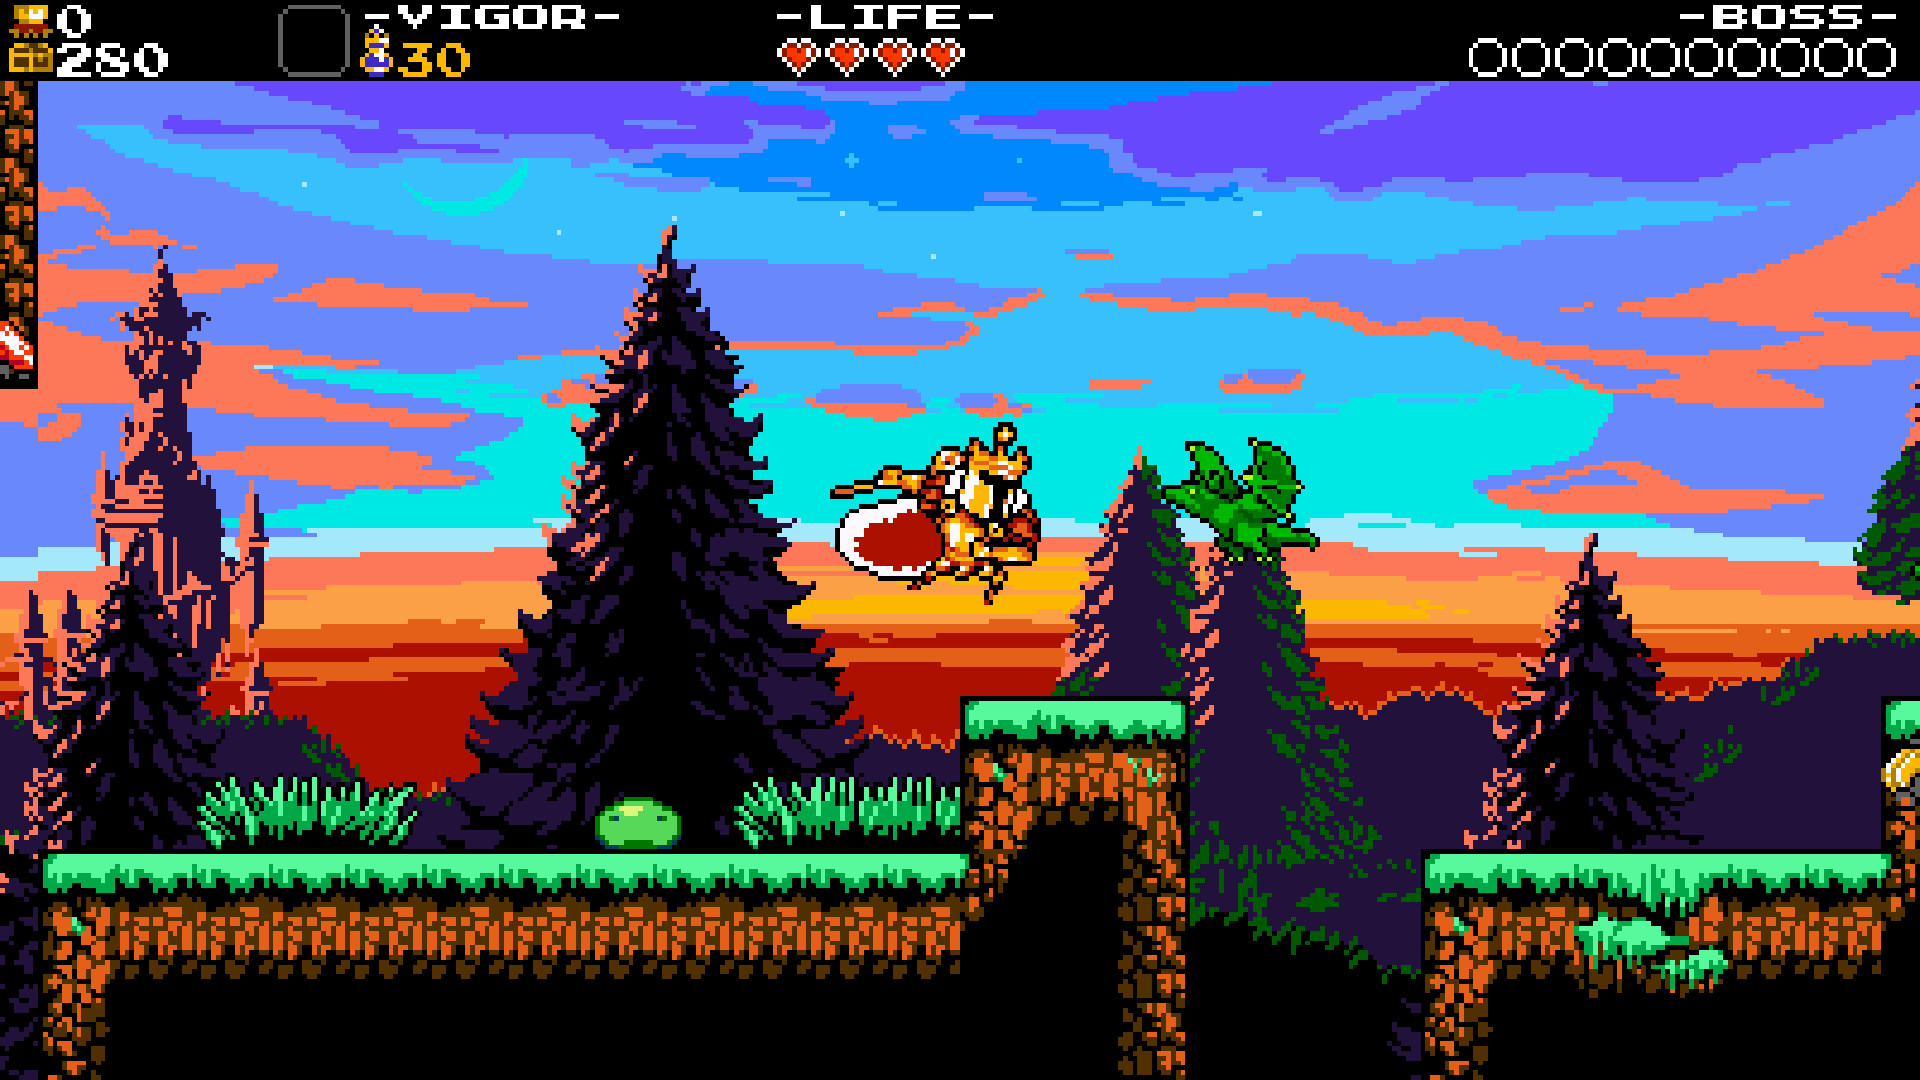 A screenshot from Shovel Knight: King of Cards